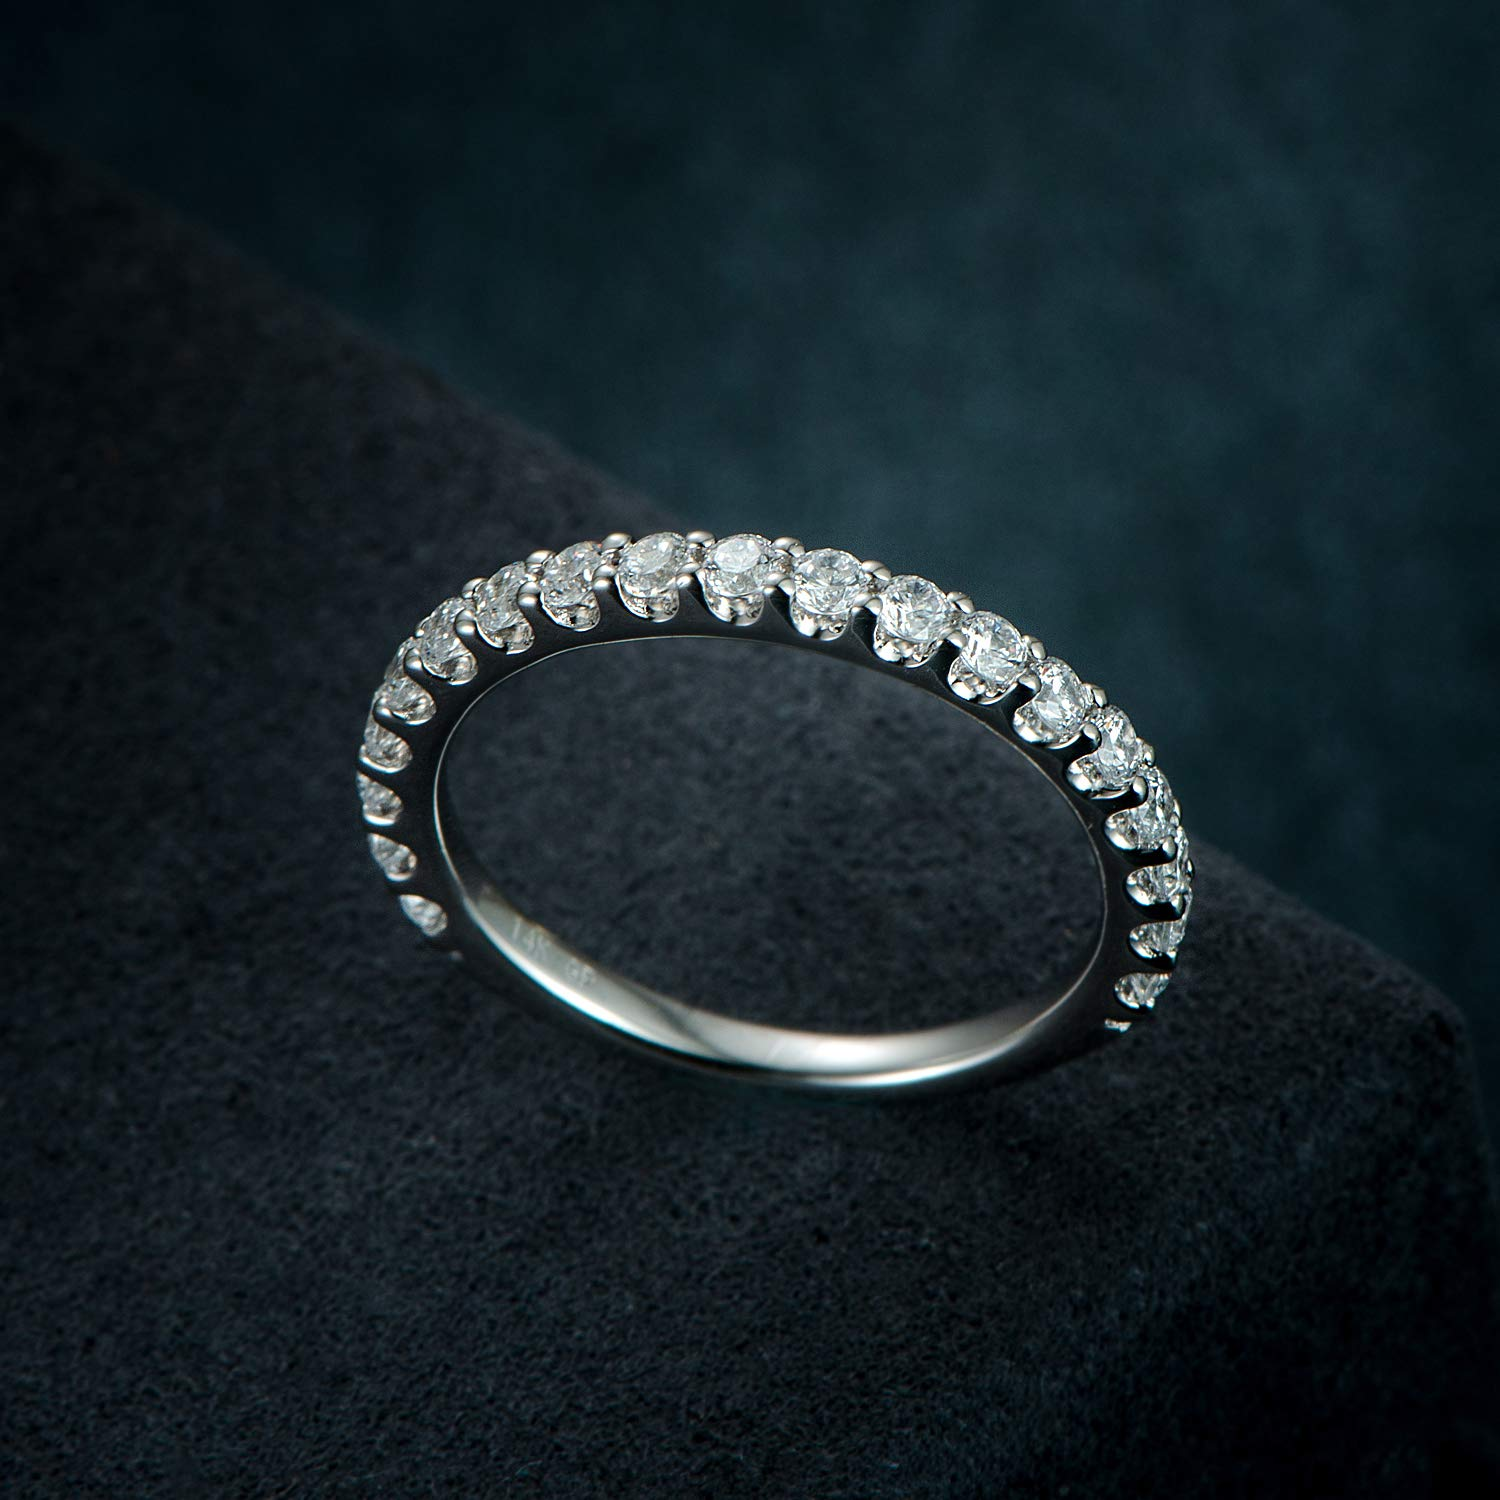 3mm Rhodium Plated Sterling Silver Simulated Diamond Cubic Zirconia CZ Half Eternity Wedding Ring (9) by Hafeez Center (Image #6)